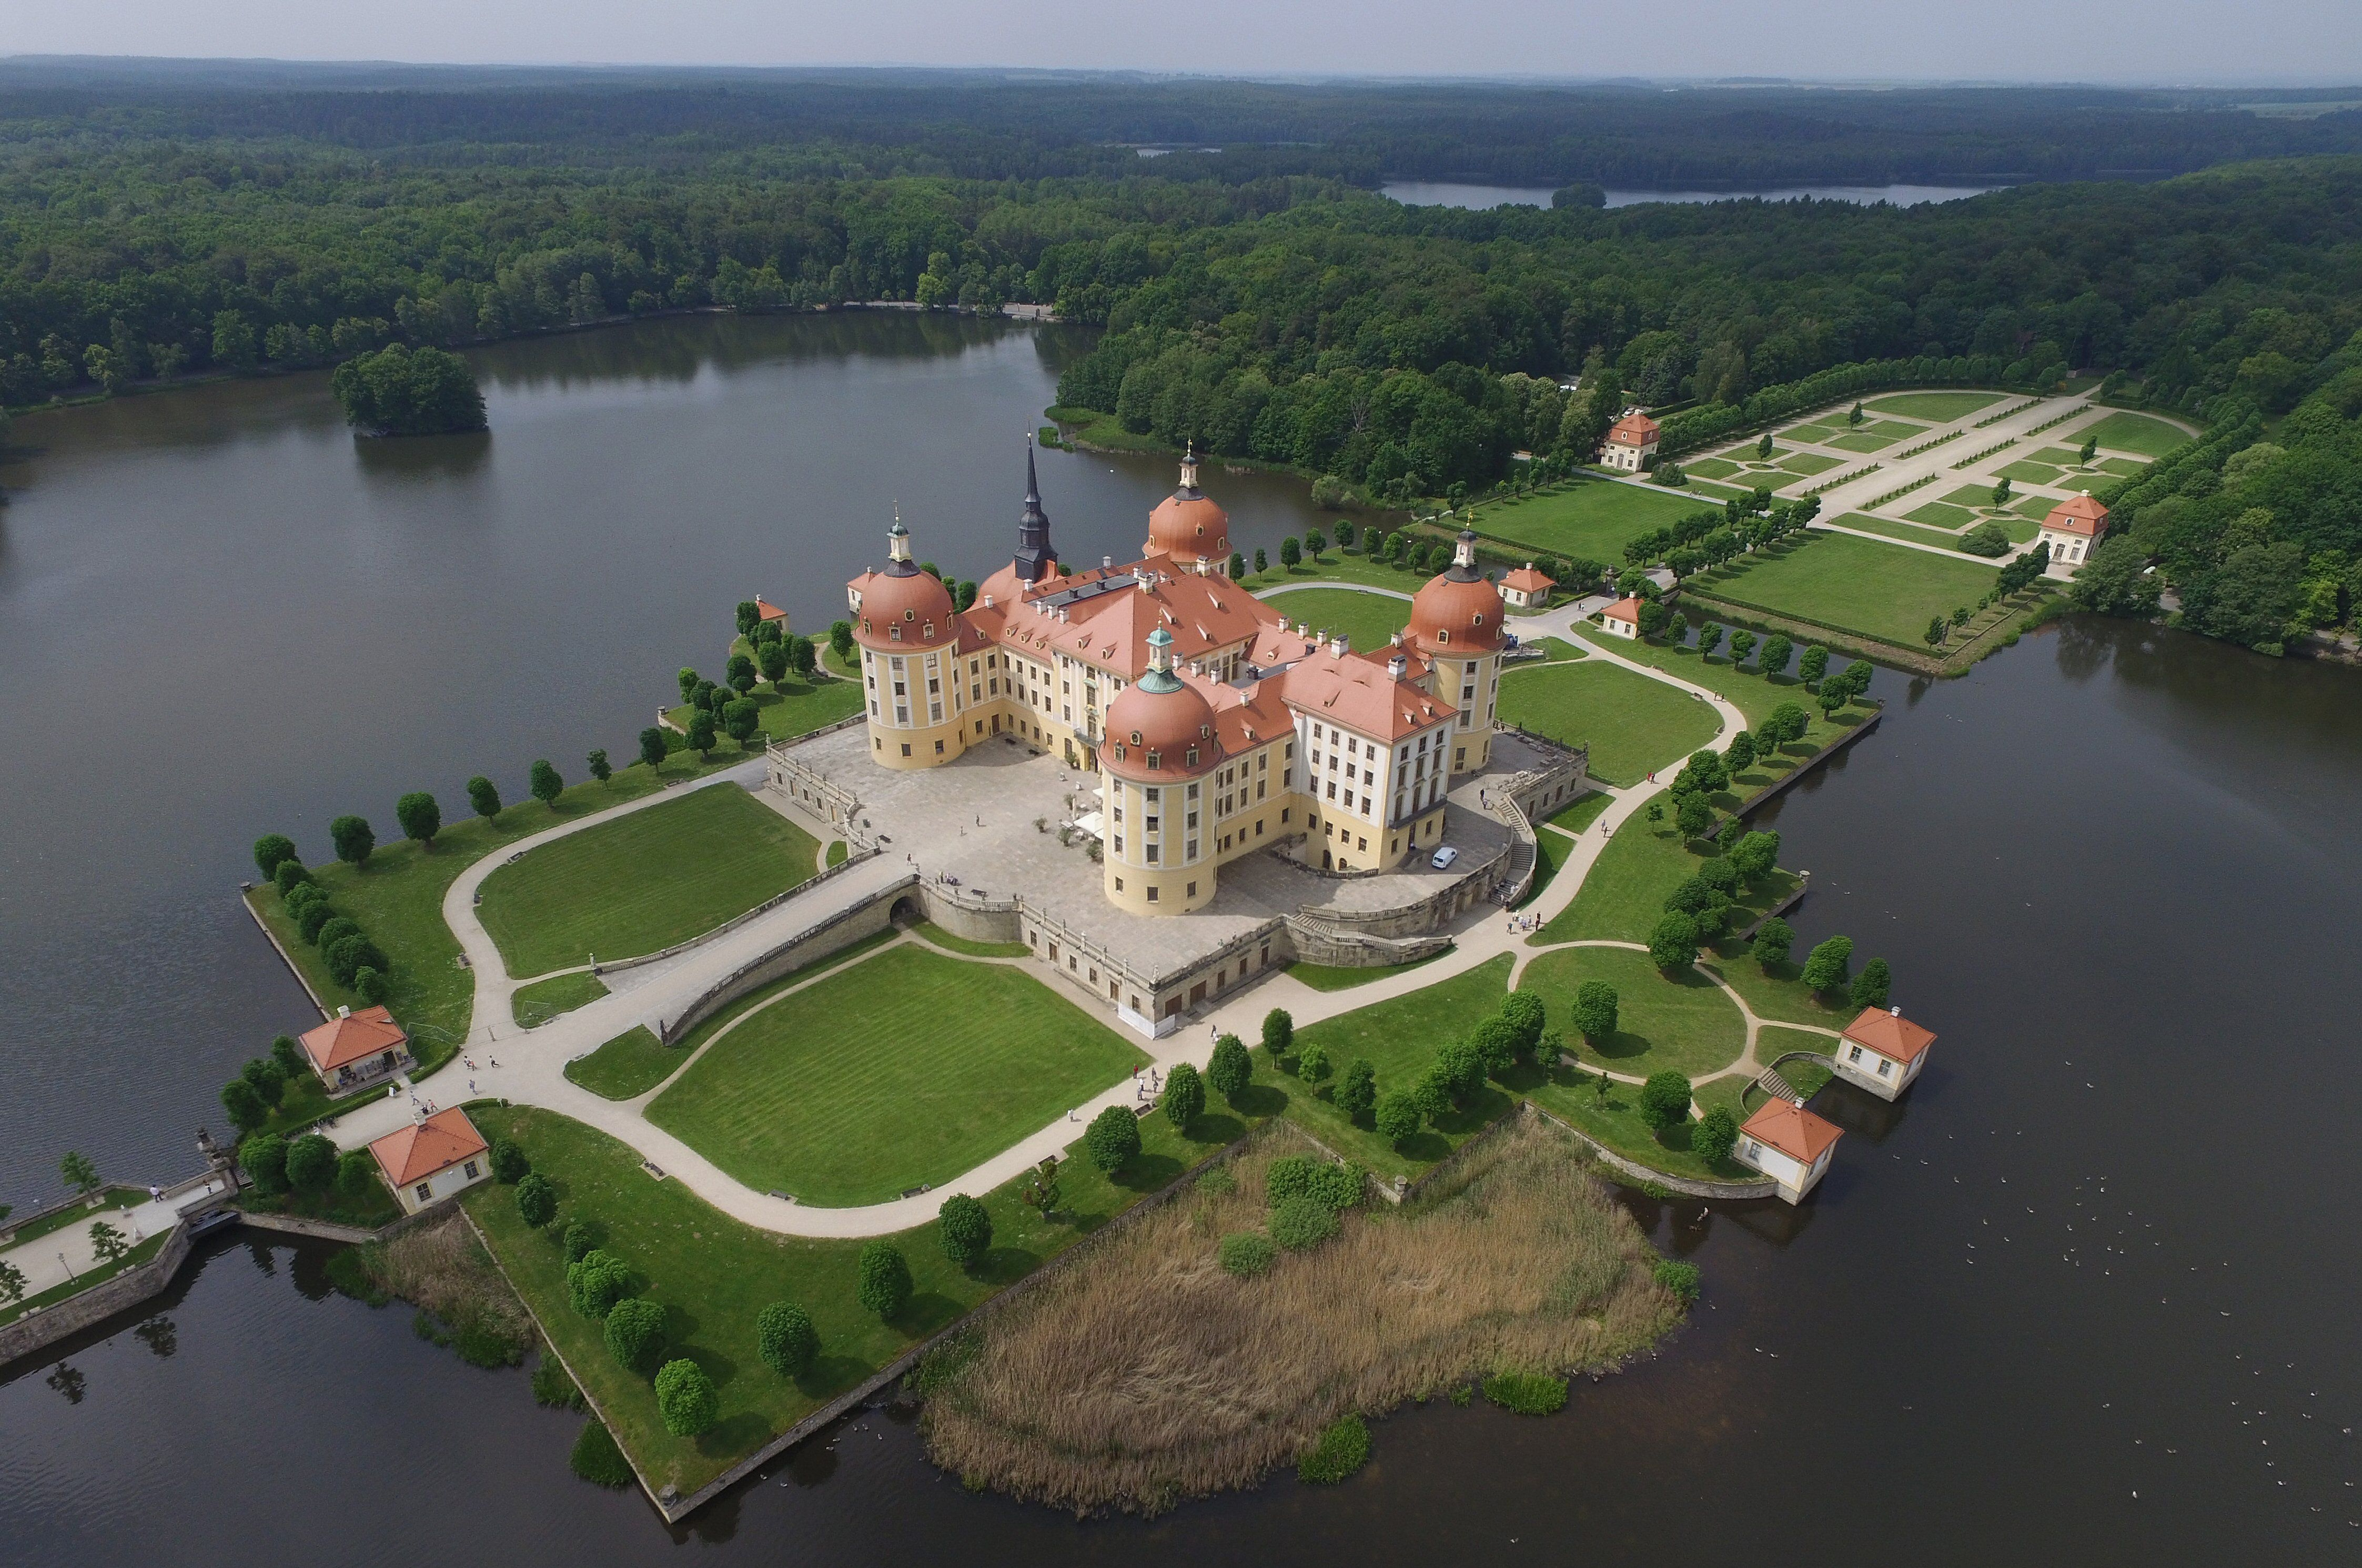 Overhead view of Moritzburg Castle, 4 red-domed turrets dominate the red hipped roof of this renovated hunting lodge nearly surrounded by water